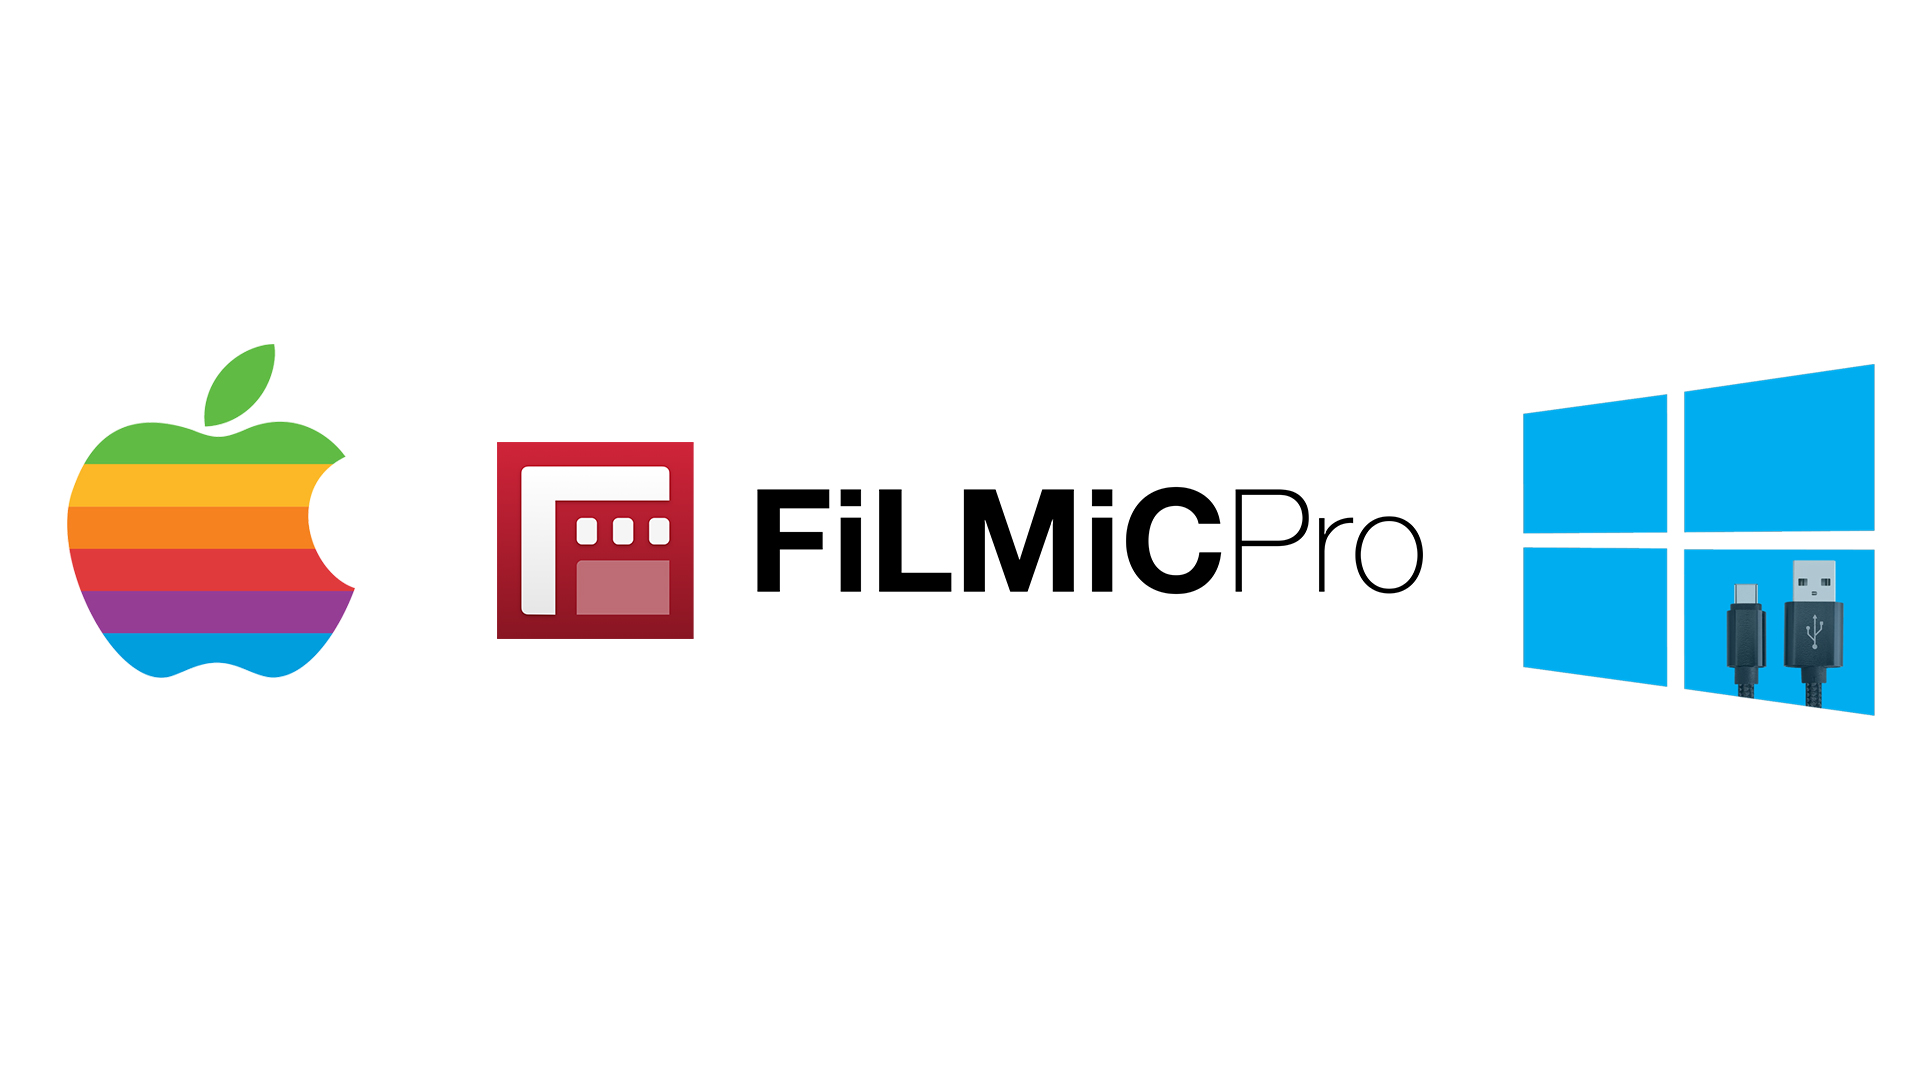 How to Import Your FiLMiC Pro Video on Mac and Windows | Filmic Pro